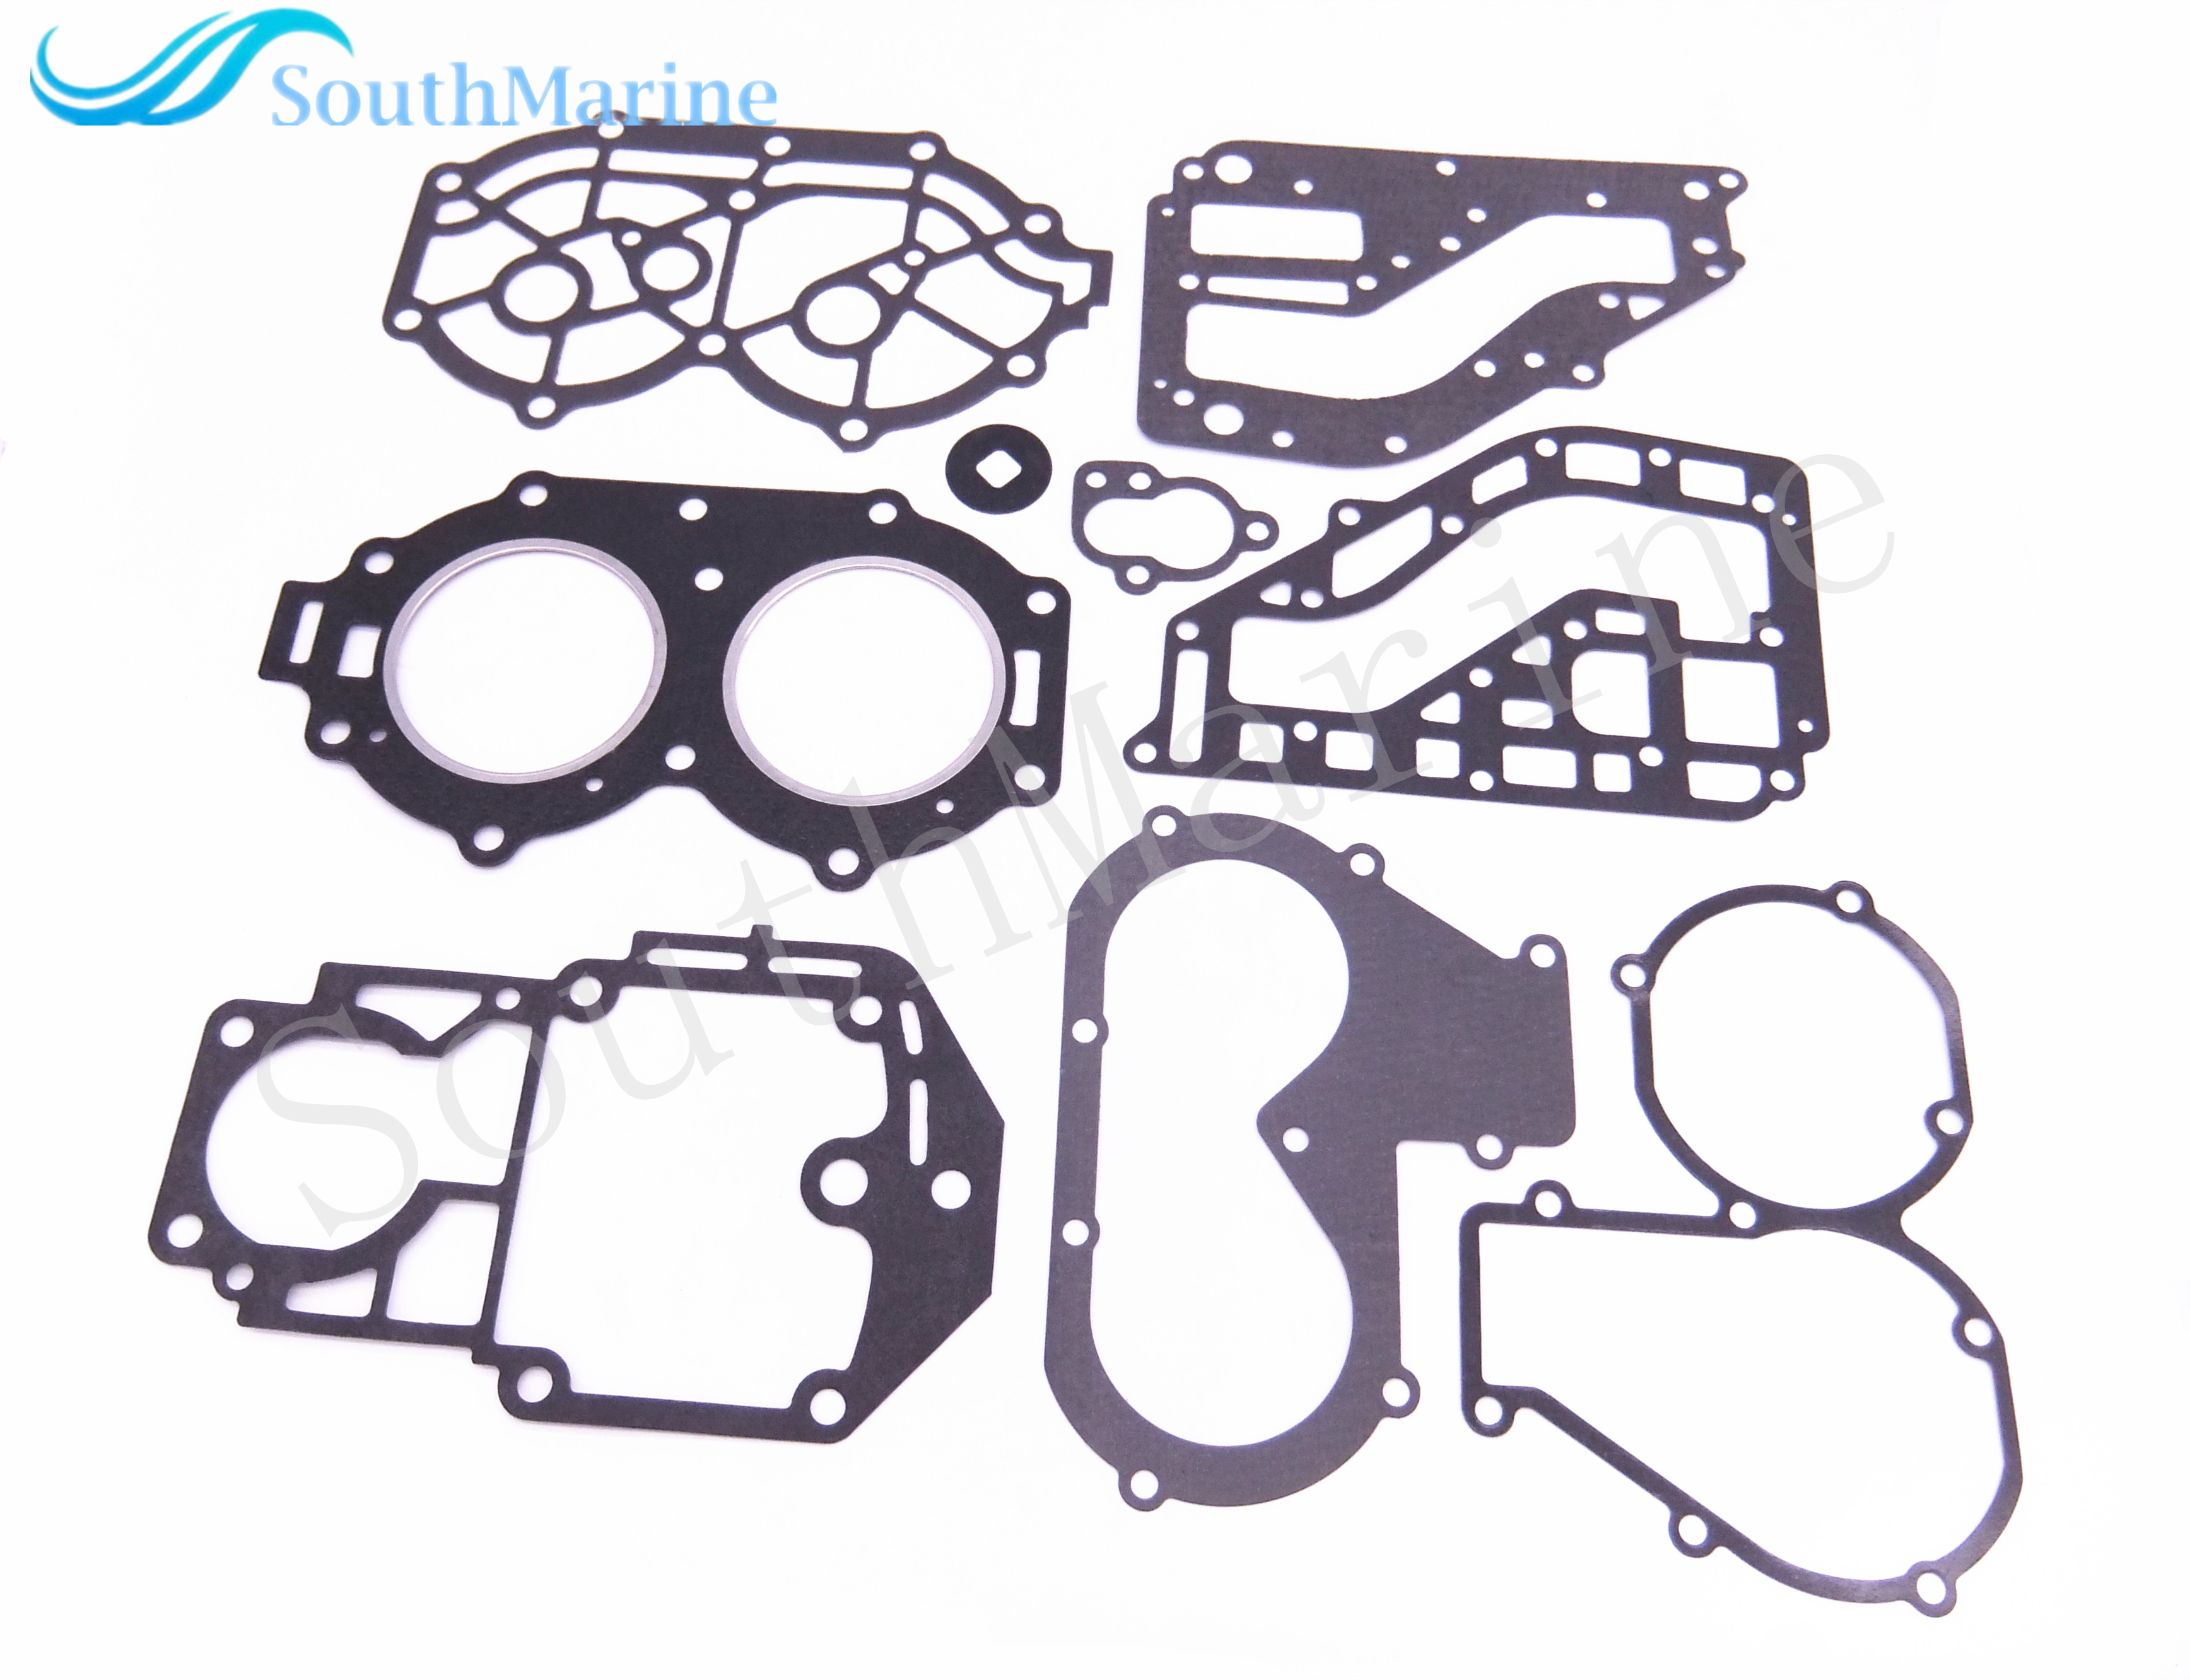 Outboard Engine Complete Power Head Seal Gasket Kit for Yamaha 25HP 30HP Boat Motor Free Shipping 67h 43880 00 new tilt trim motor for yamaha 115 225 hp 1997 2002 outboard engine power motor 64e 43880